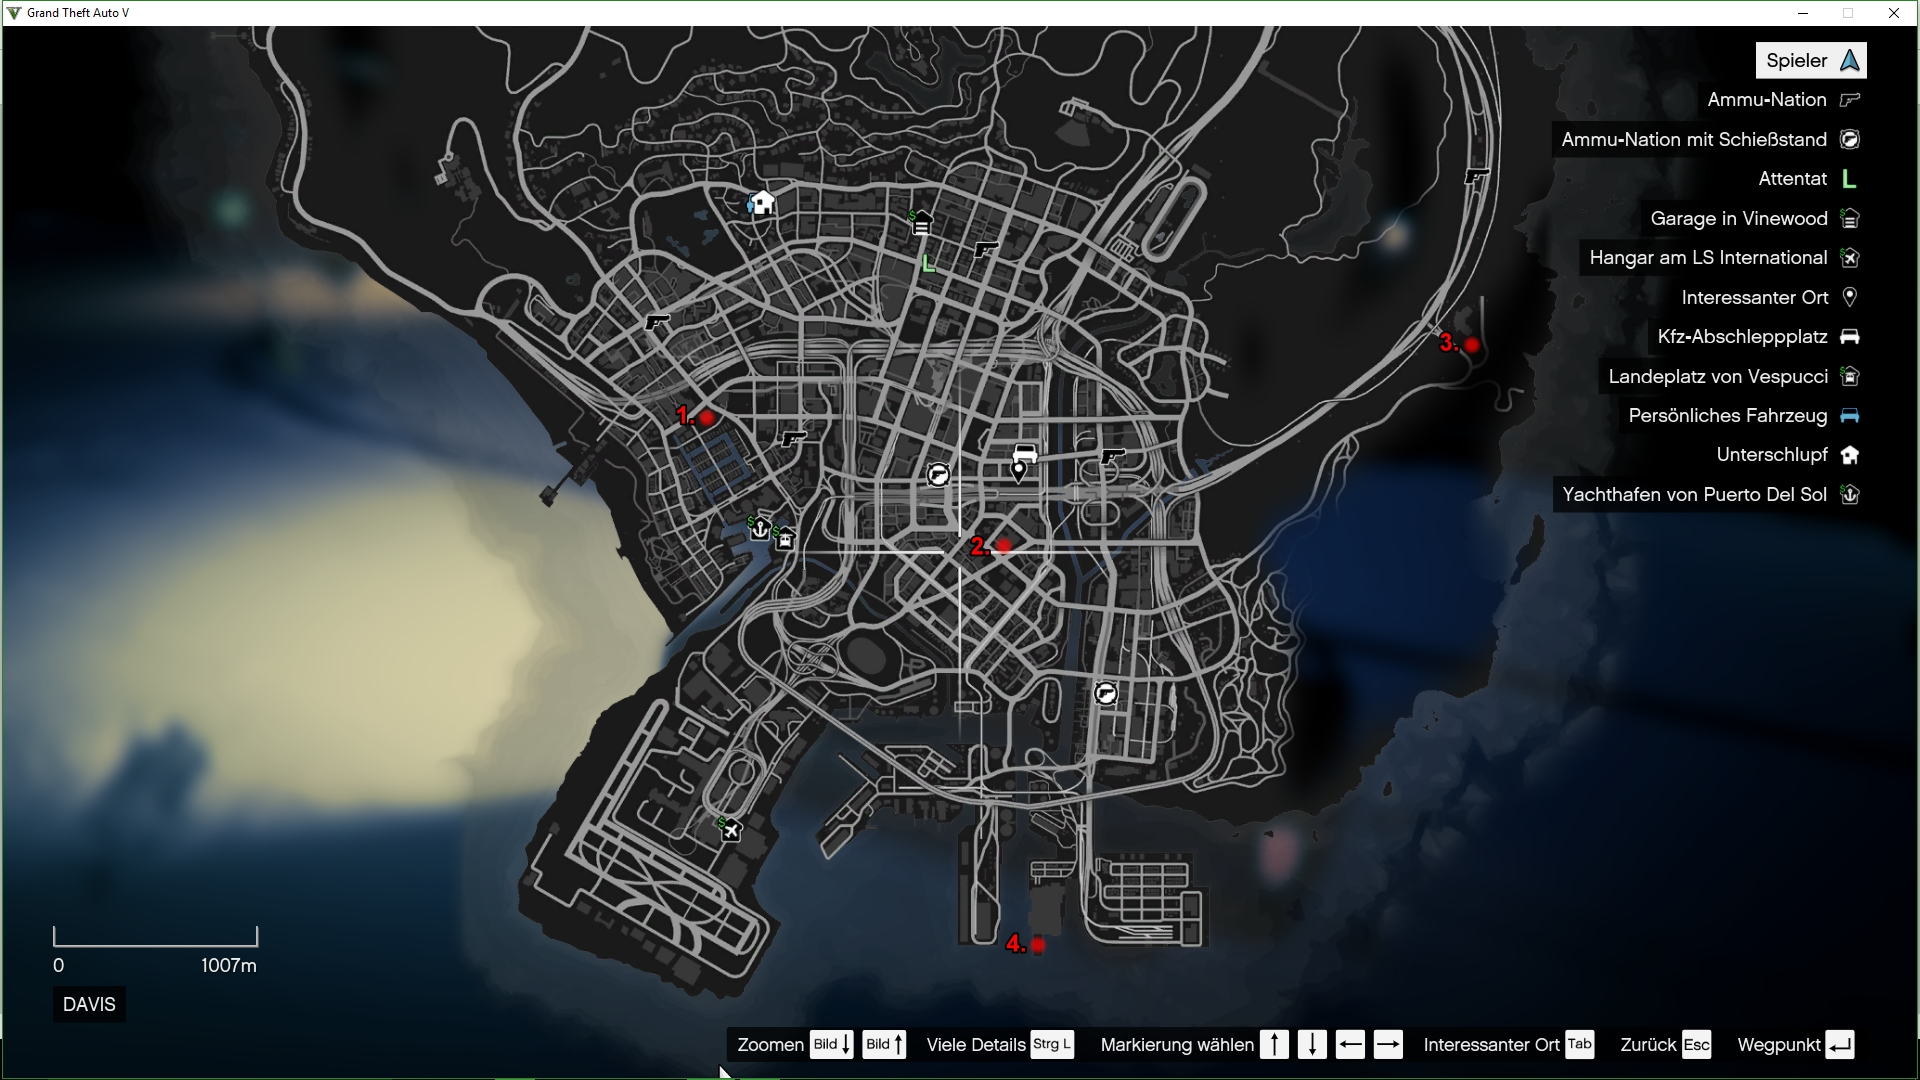 gta 5 helicopter online with Grand Theft Auto V Helikopter Standorte Finden on Watch also 93952 Mexican Cartel in addition Gta 5 Online Heists Guide The Humane Labs Raid in addition Watch together with 80550 Kasumi Doa.